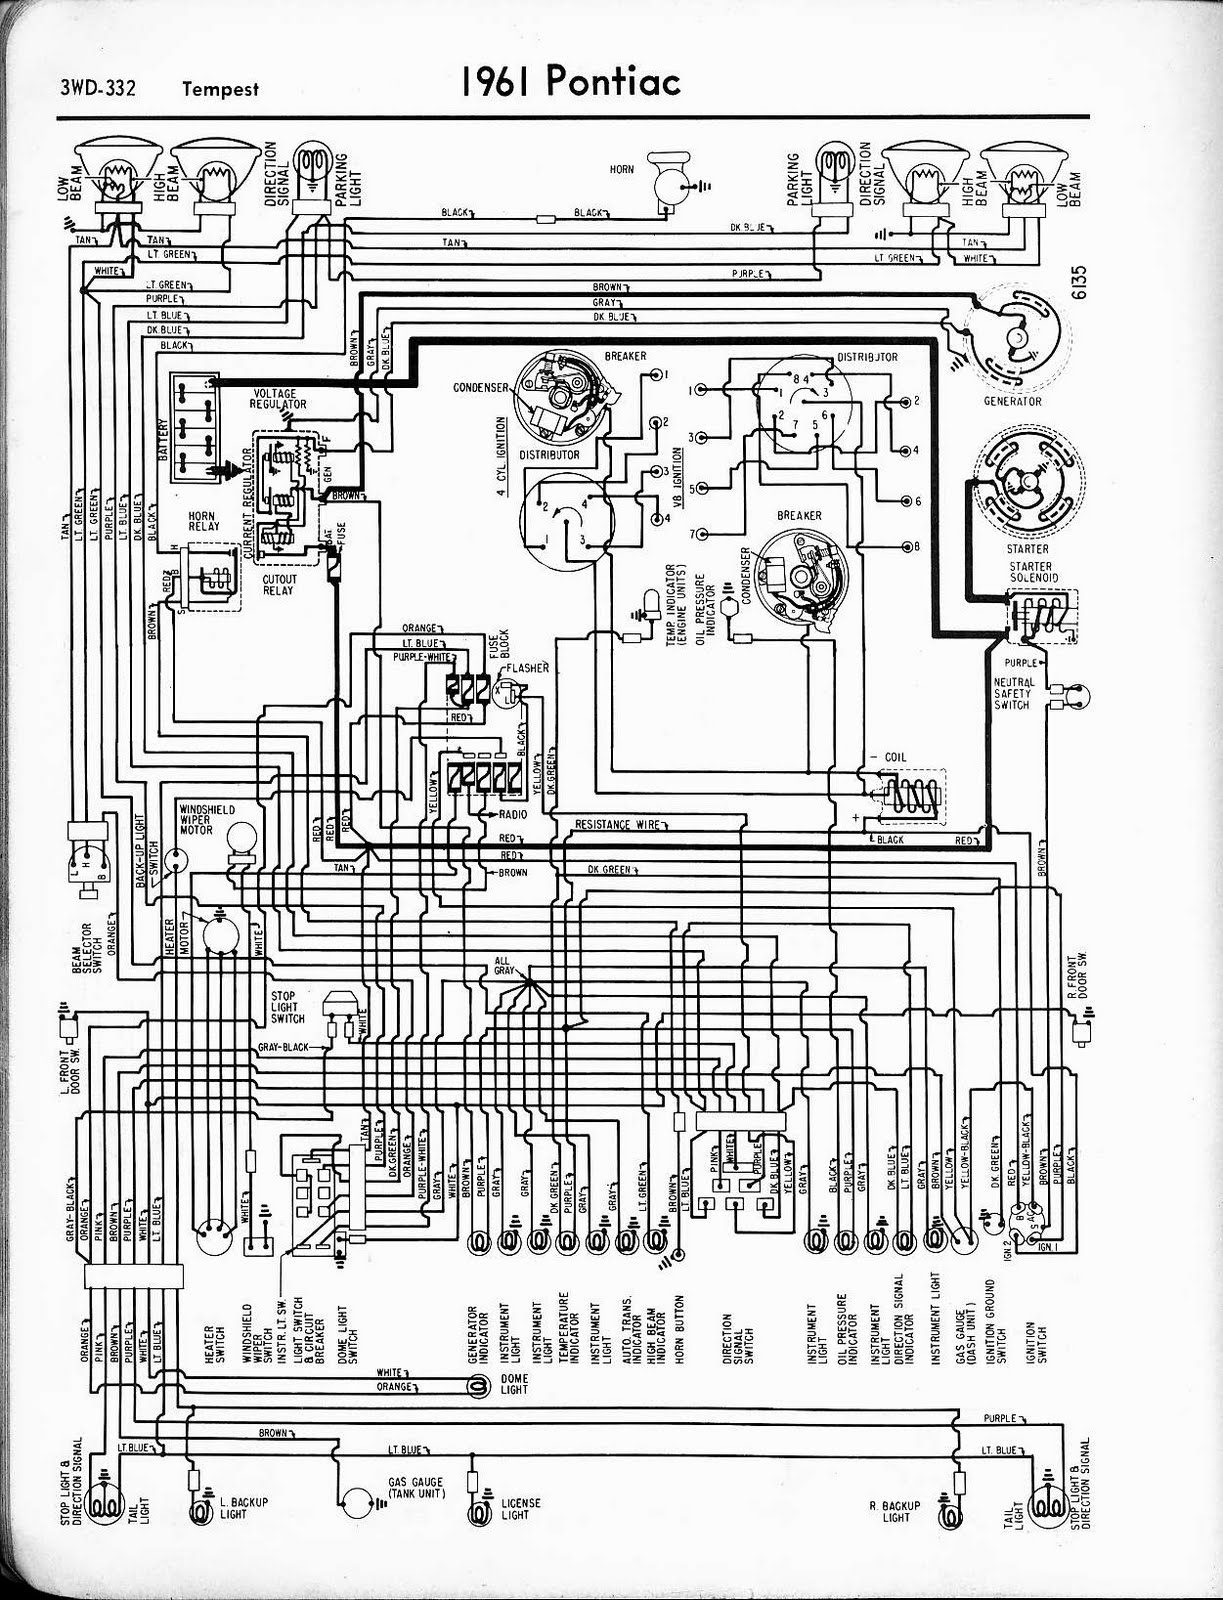 wiring diagram for nova wiring discover your wiring diagram 1967 gto tach wiring diagram ther 1964 plymouth